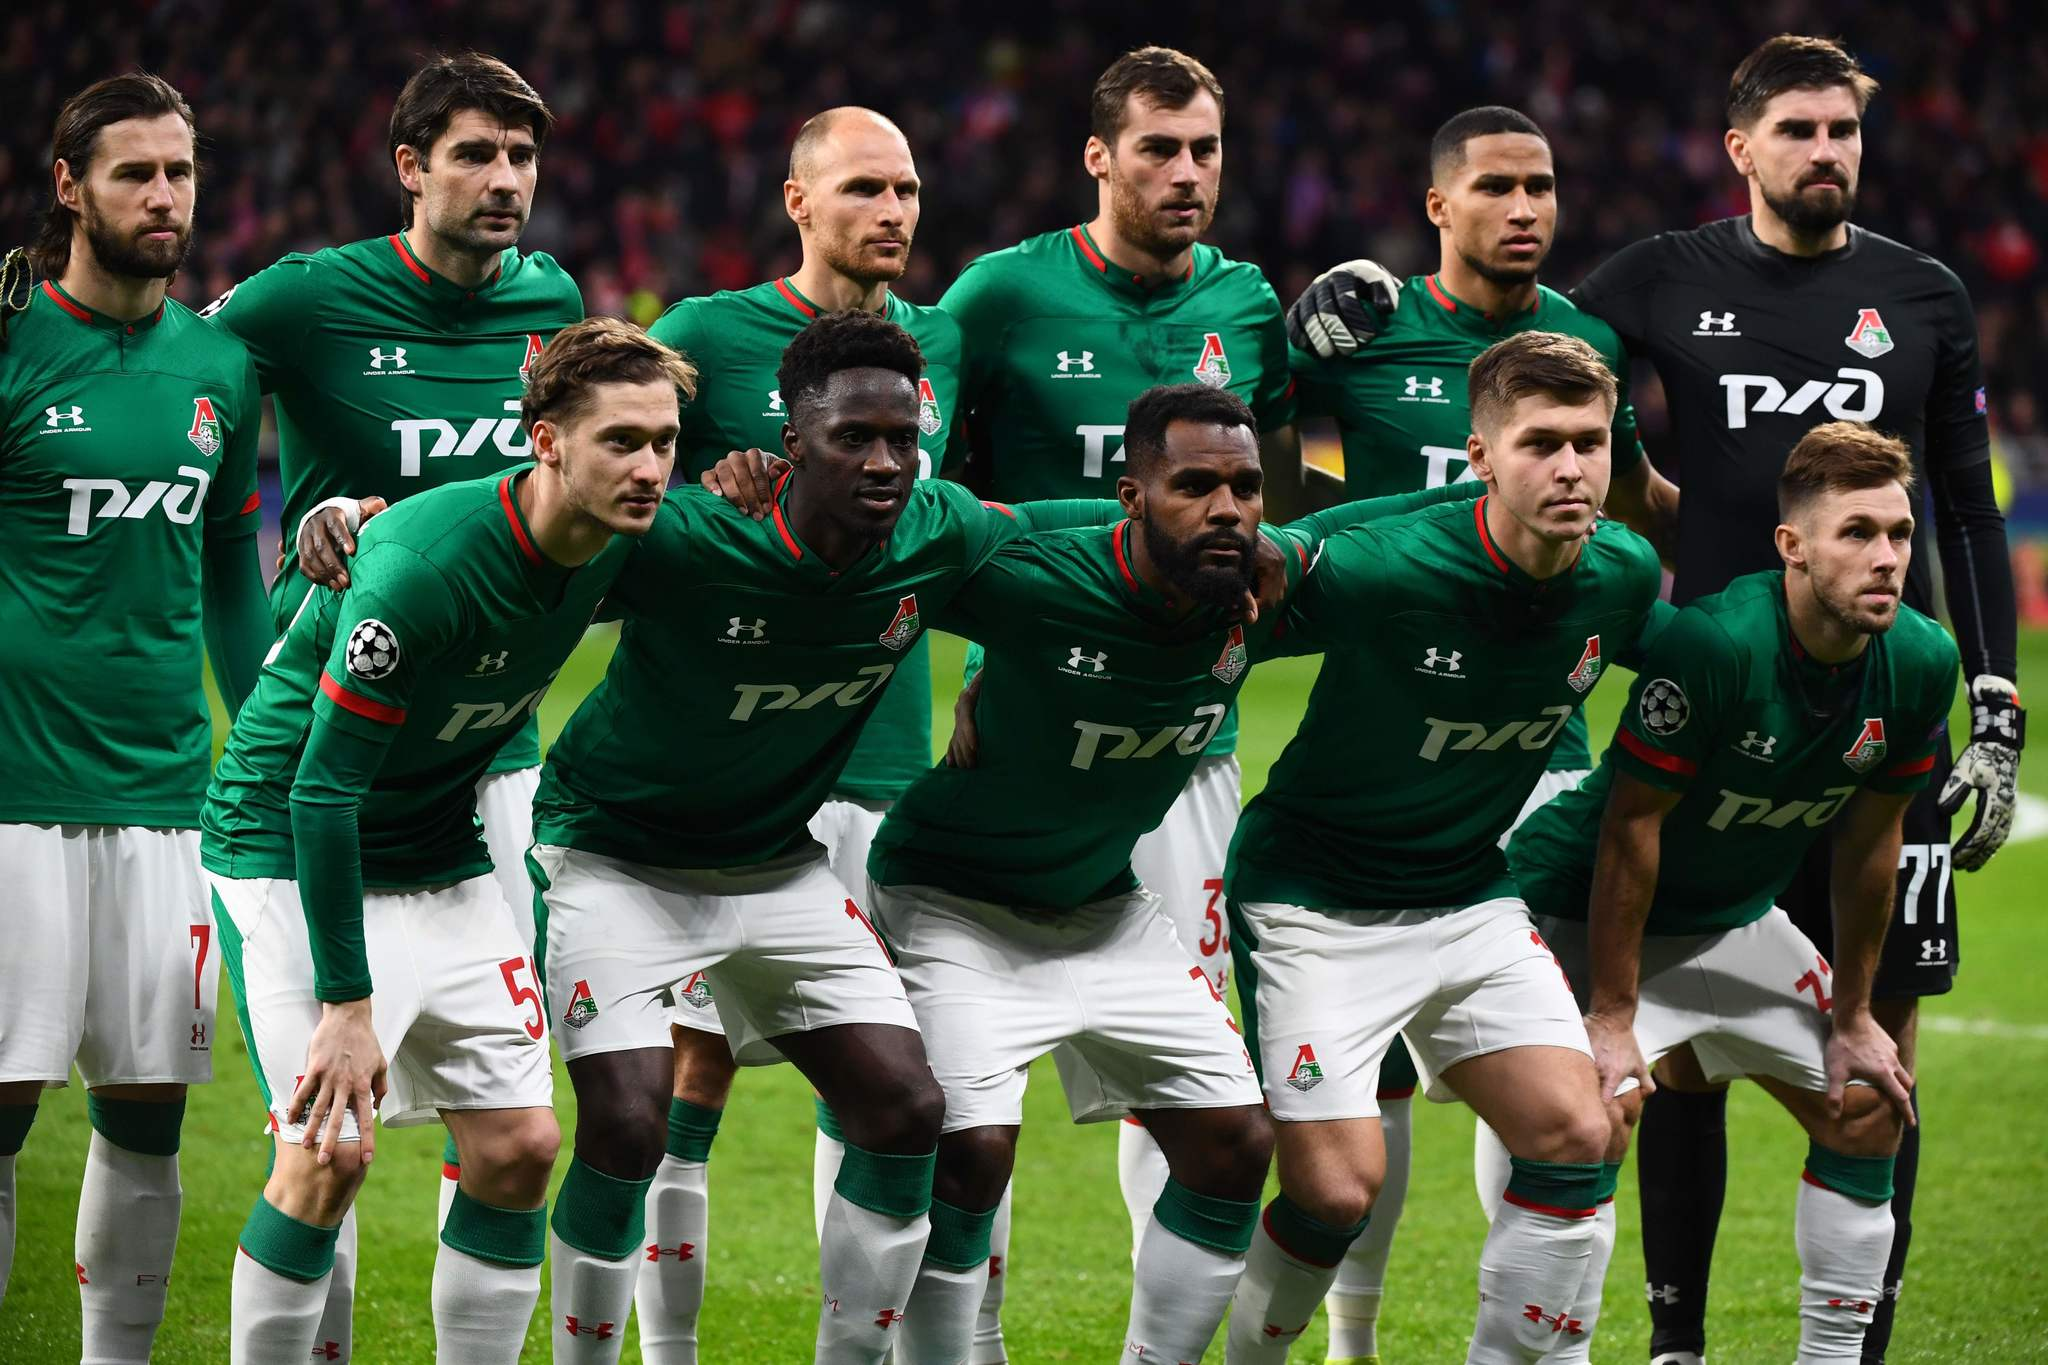 <HIT>Lokomotiv</HIT> players line up before the UEFA Champions League football match between Club Atletico de Madrid and <HIT>Lokomotiv</HIT> Moscow at the Wanda Metropolitano stadium in Madrid on December 11, 2019. (Photo by GABRIEL BOUYS / AFP)